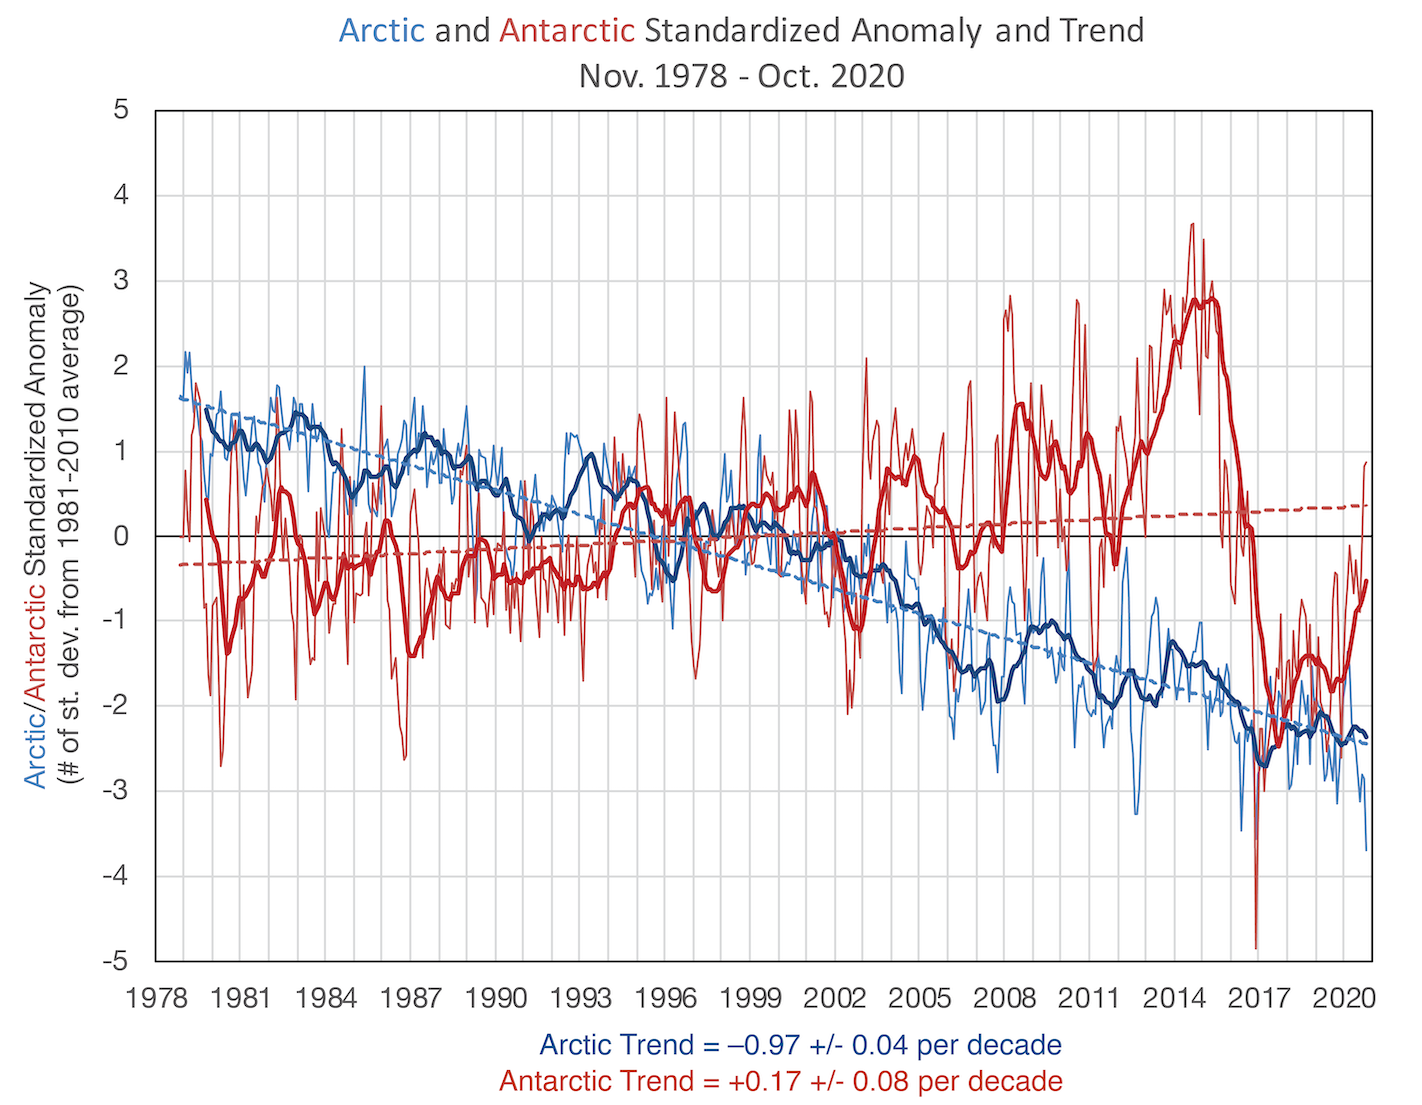 Sea ice extent anomaly and trend